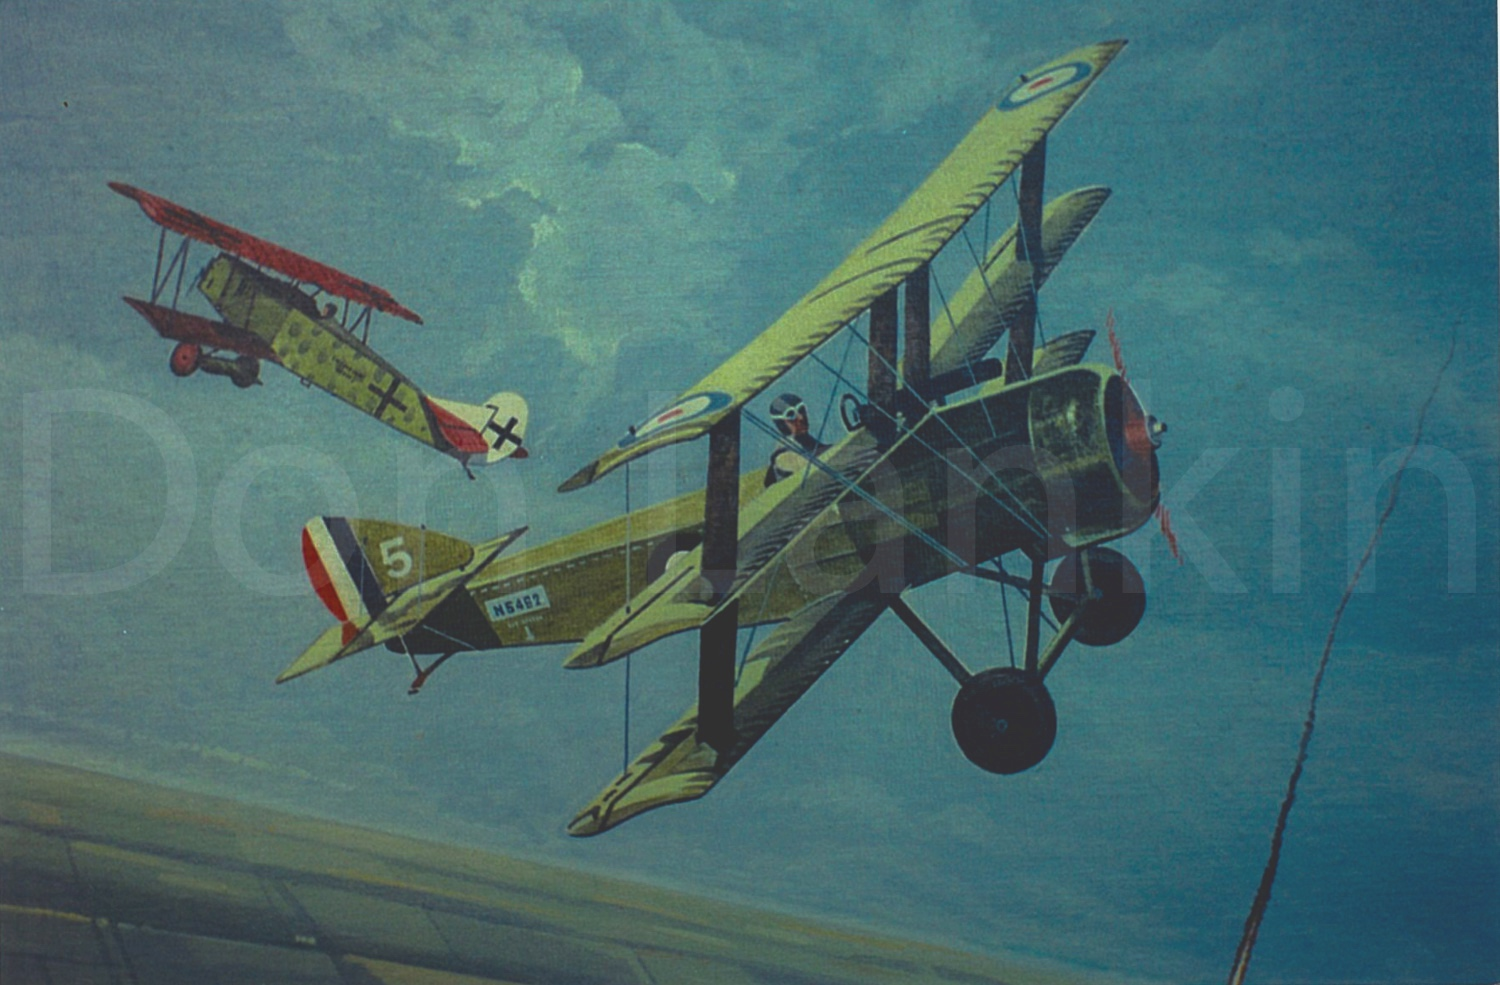 A sound design, the Triplane was very maneuverable with a good rate of climb but underpowered and underarmed.